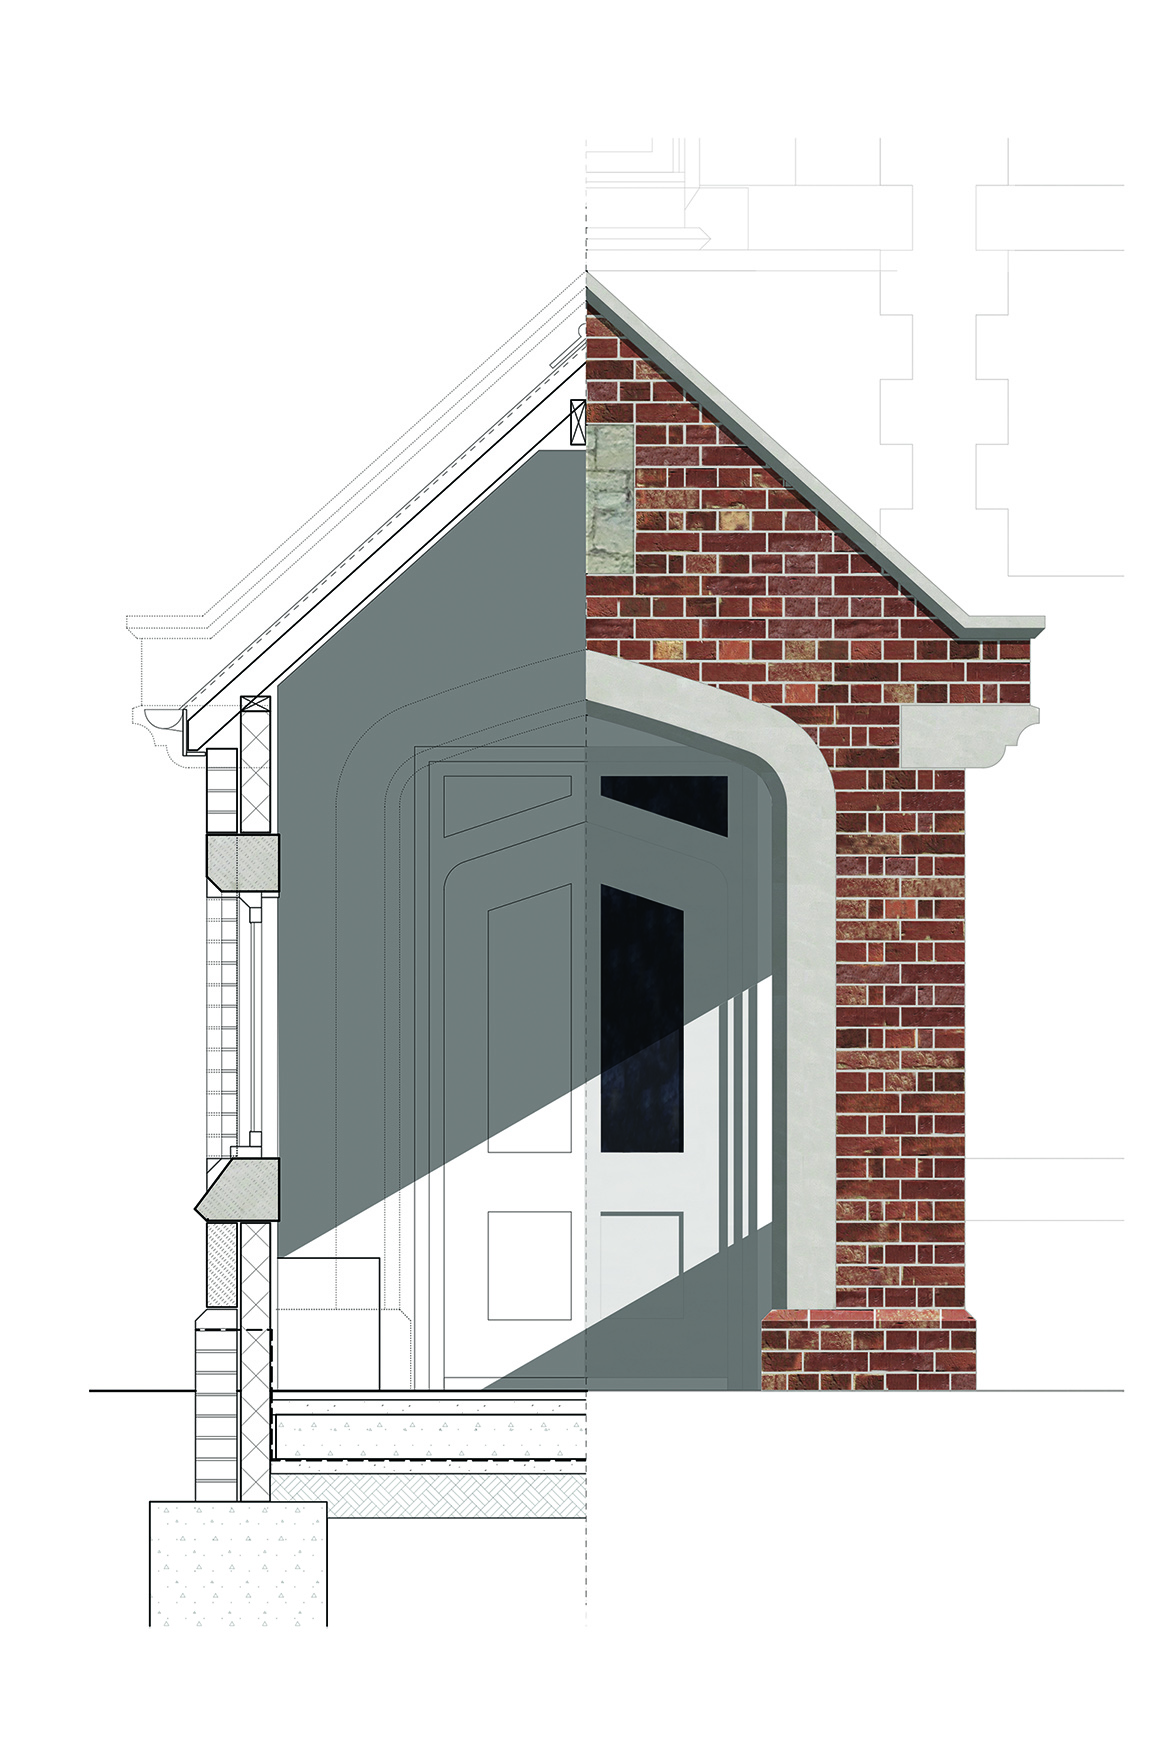 01a-elsted-porch-rectory-house-extension-concept-section-elevation-architecture-chichester-west-sussex-south-downs-national-park-uk-rider-stirland-architects.jpg